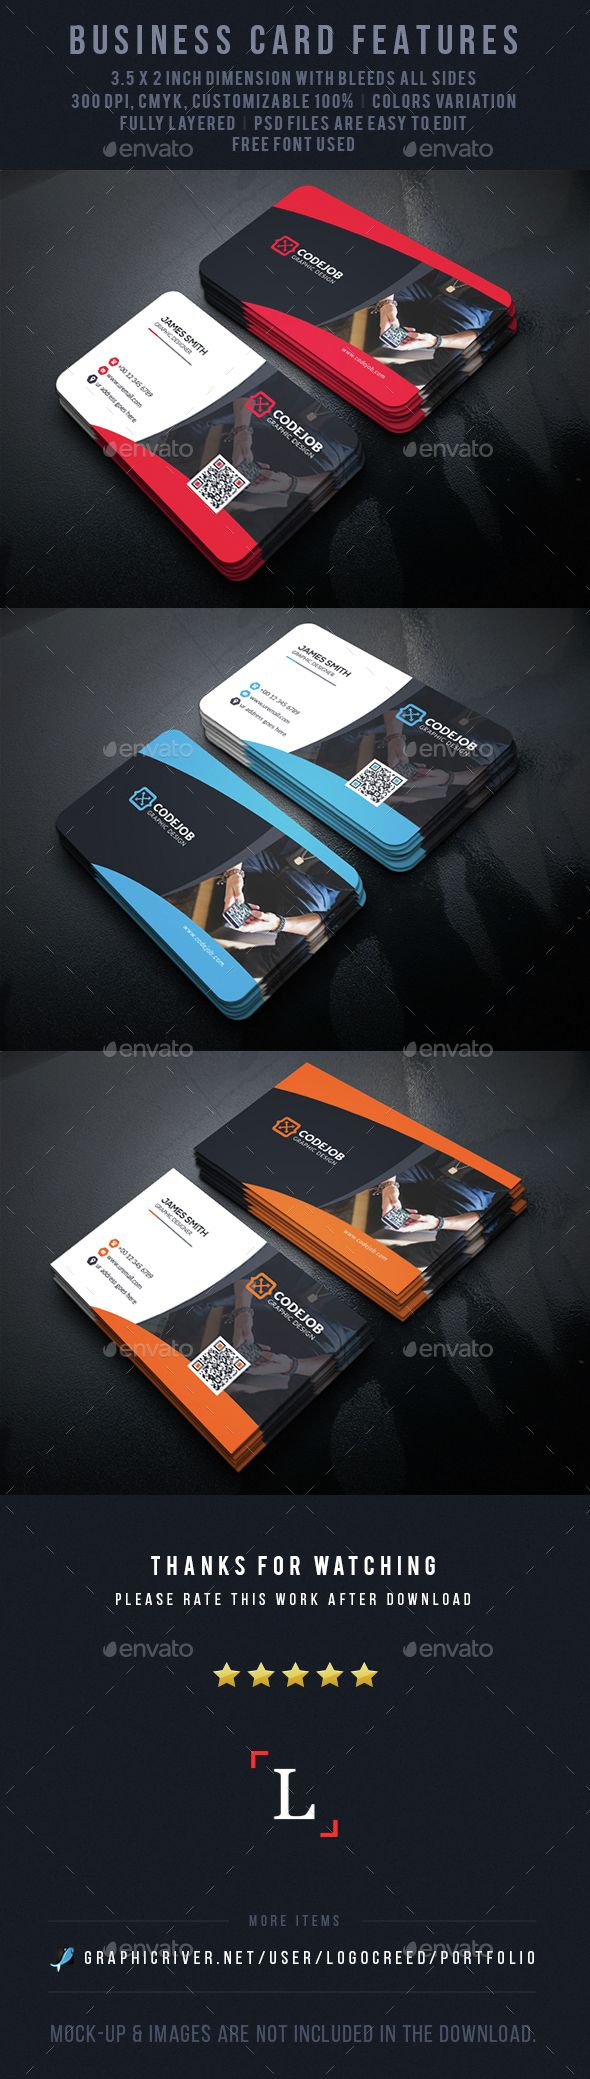 146 best business card images on Pinterest | Business card templates ...